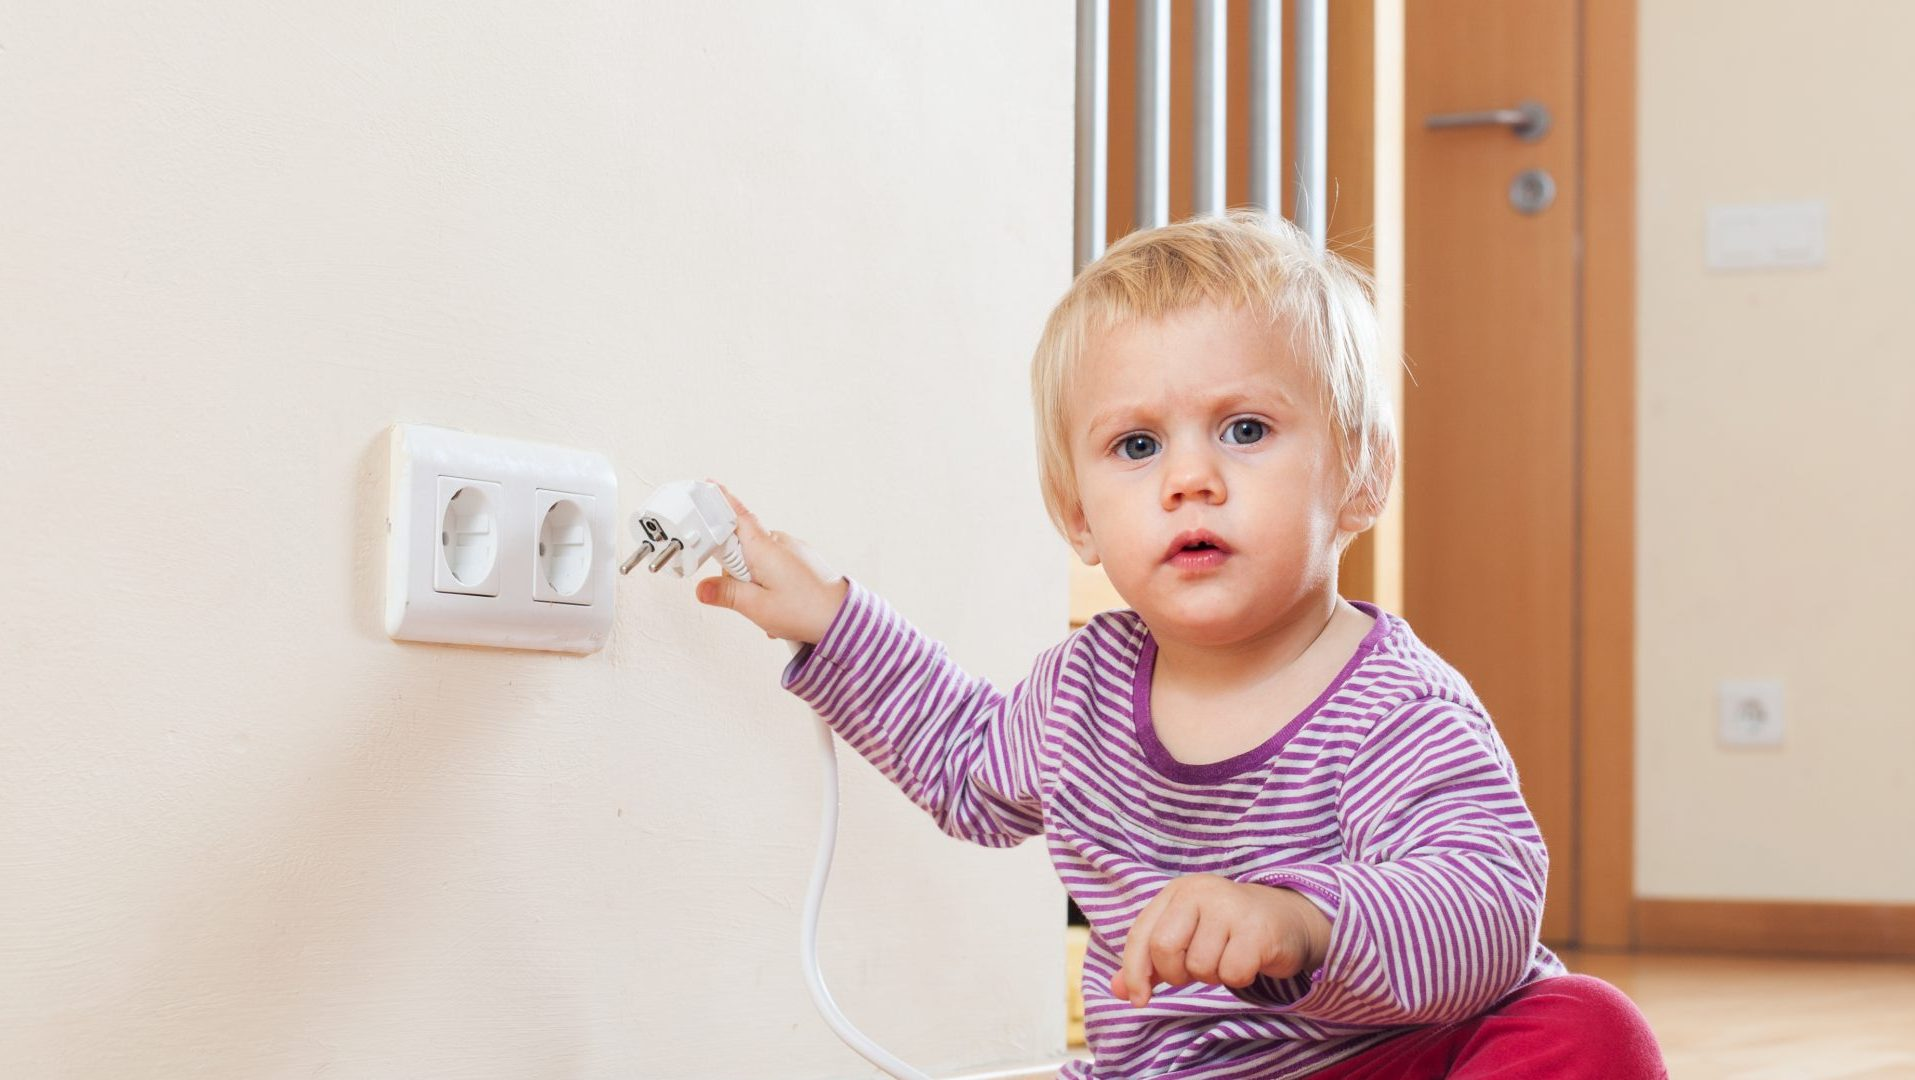 Electrical Safety Around the Home